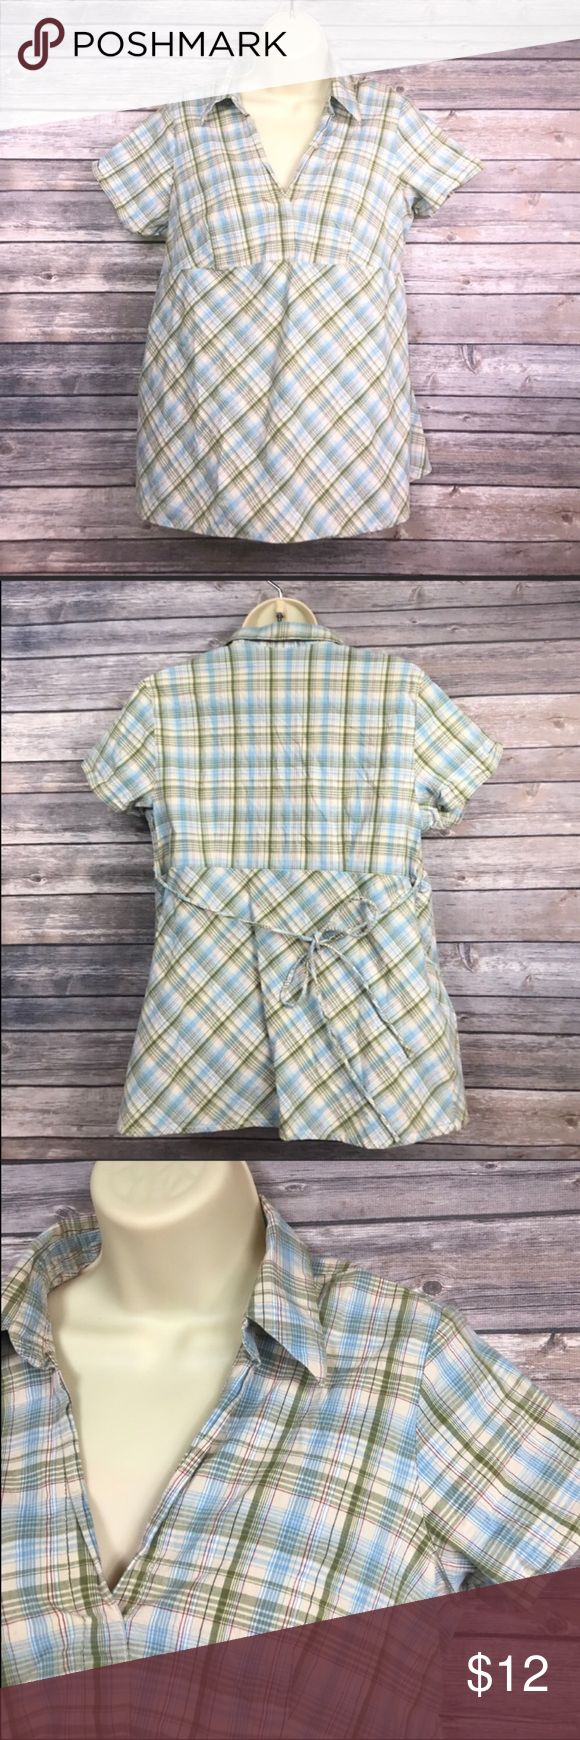 🔶Large Motherhood Maternity short sleeve top Cute pattern for spring/summer!  Has tie back and shirt sleeves.  Size Large. Motherhood Maternity Tops